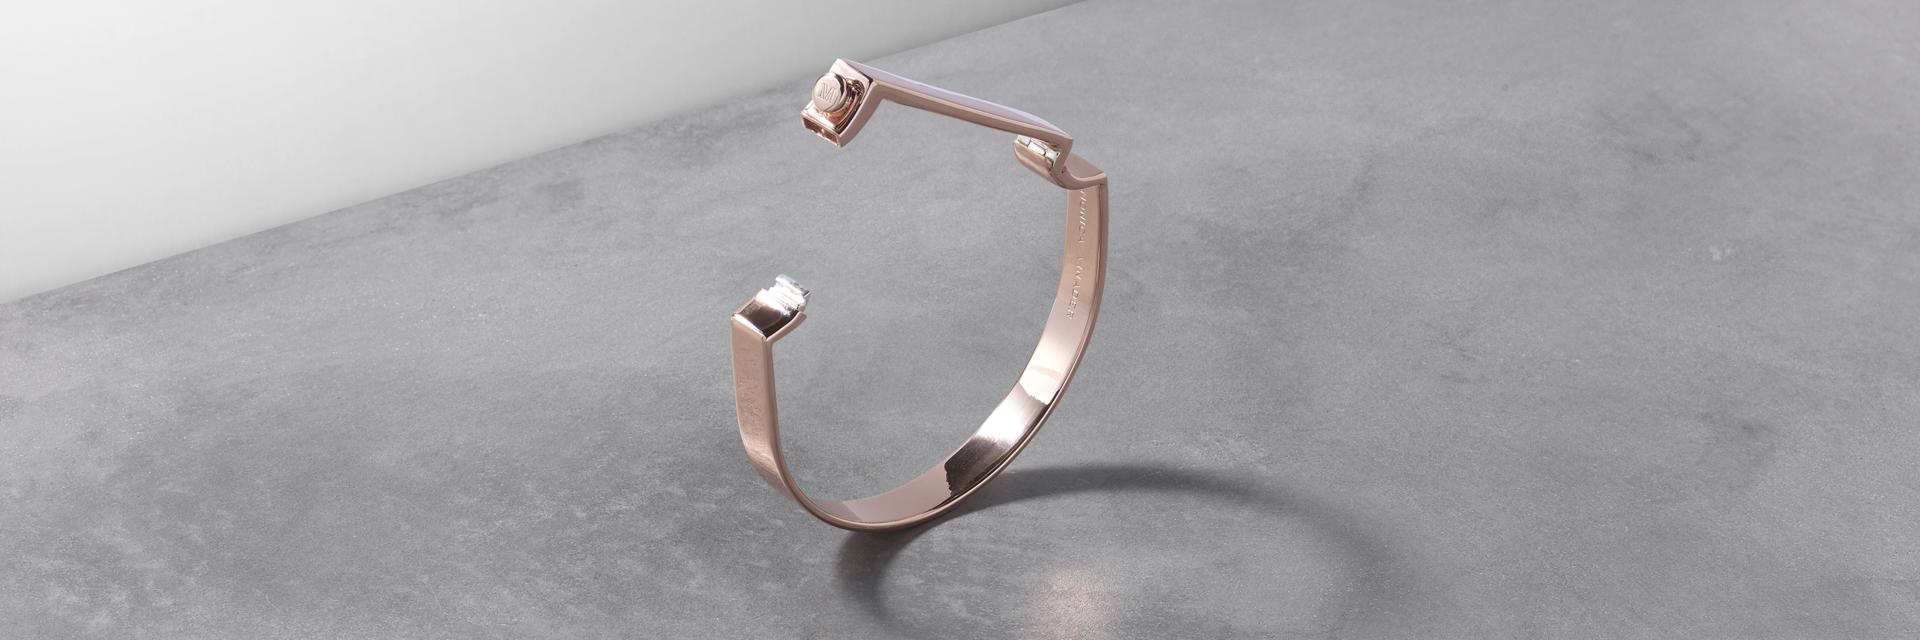 Signature Bangle 18ct Rose Gold Vermeil - Opening and Closing with snap fastener